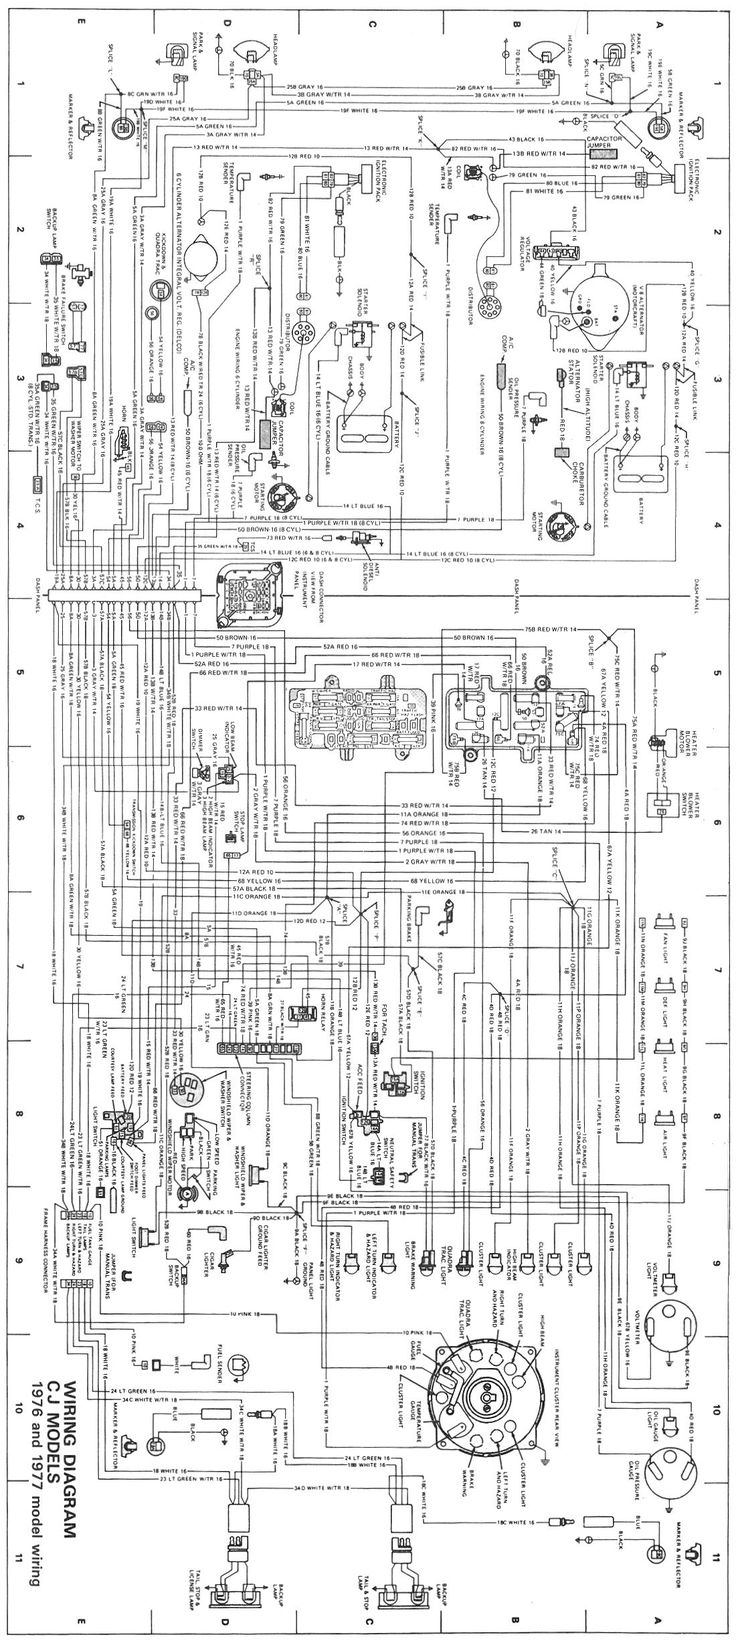 1964 Willys Jeep Wiring Diagram 31 Images 1963 Truck Diagrams 8d25ded6e3673519e155875e09844e5e Cj Stuff 333 Best Jeeps On Pinterest